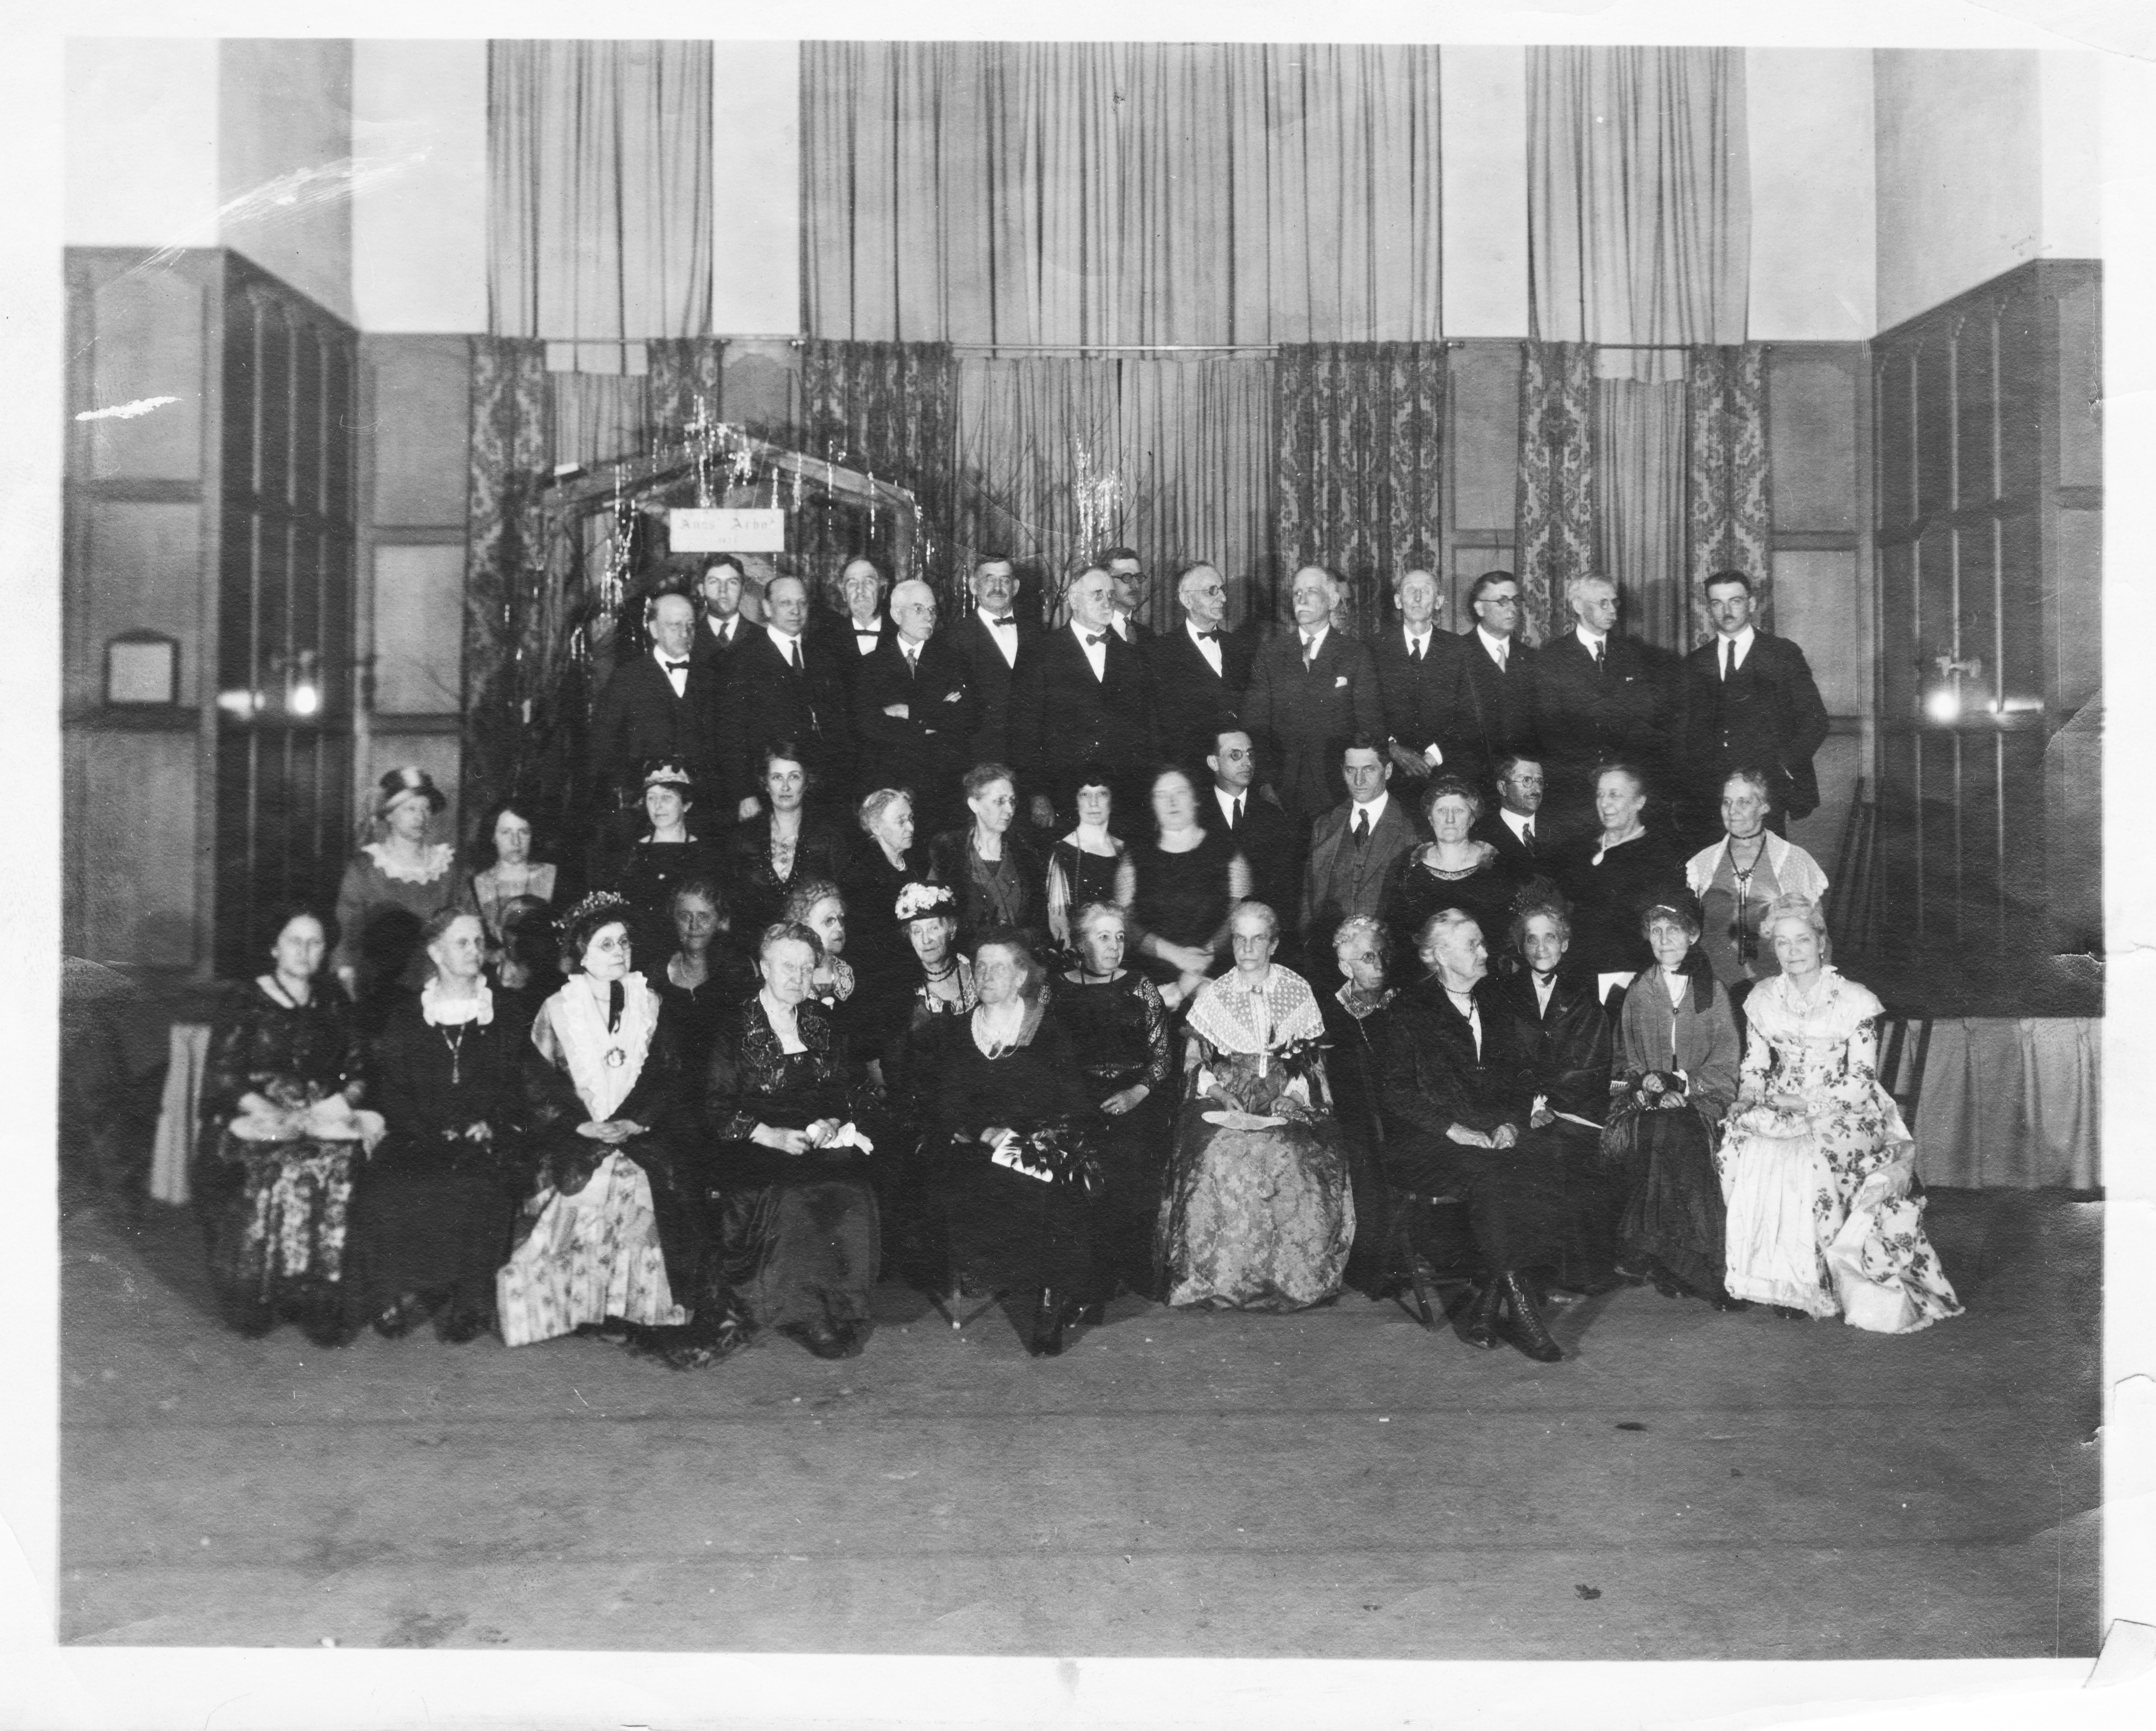 Descendants of Ann Arbor's early settlers at the city's centennial banquet in the Michigan Union on February 27, 1924 image